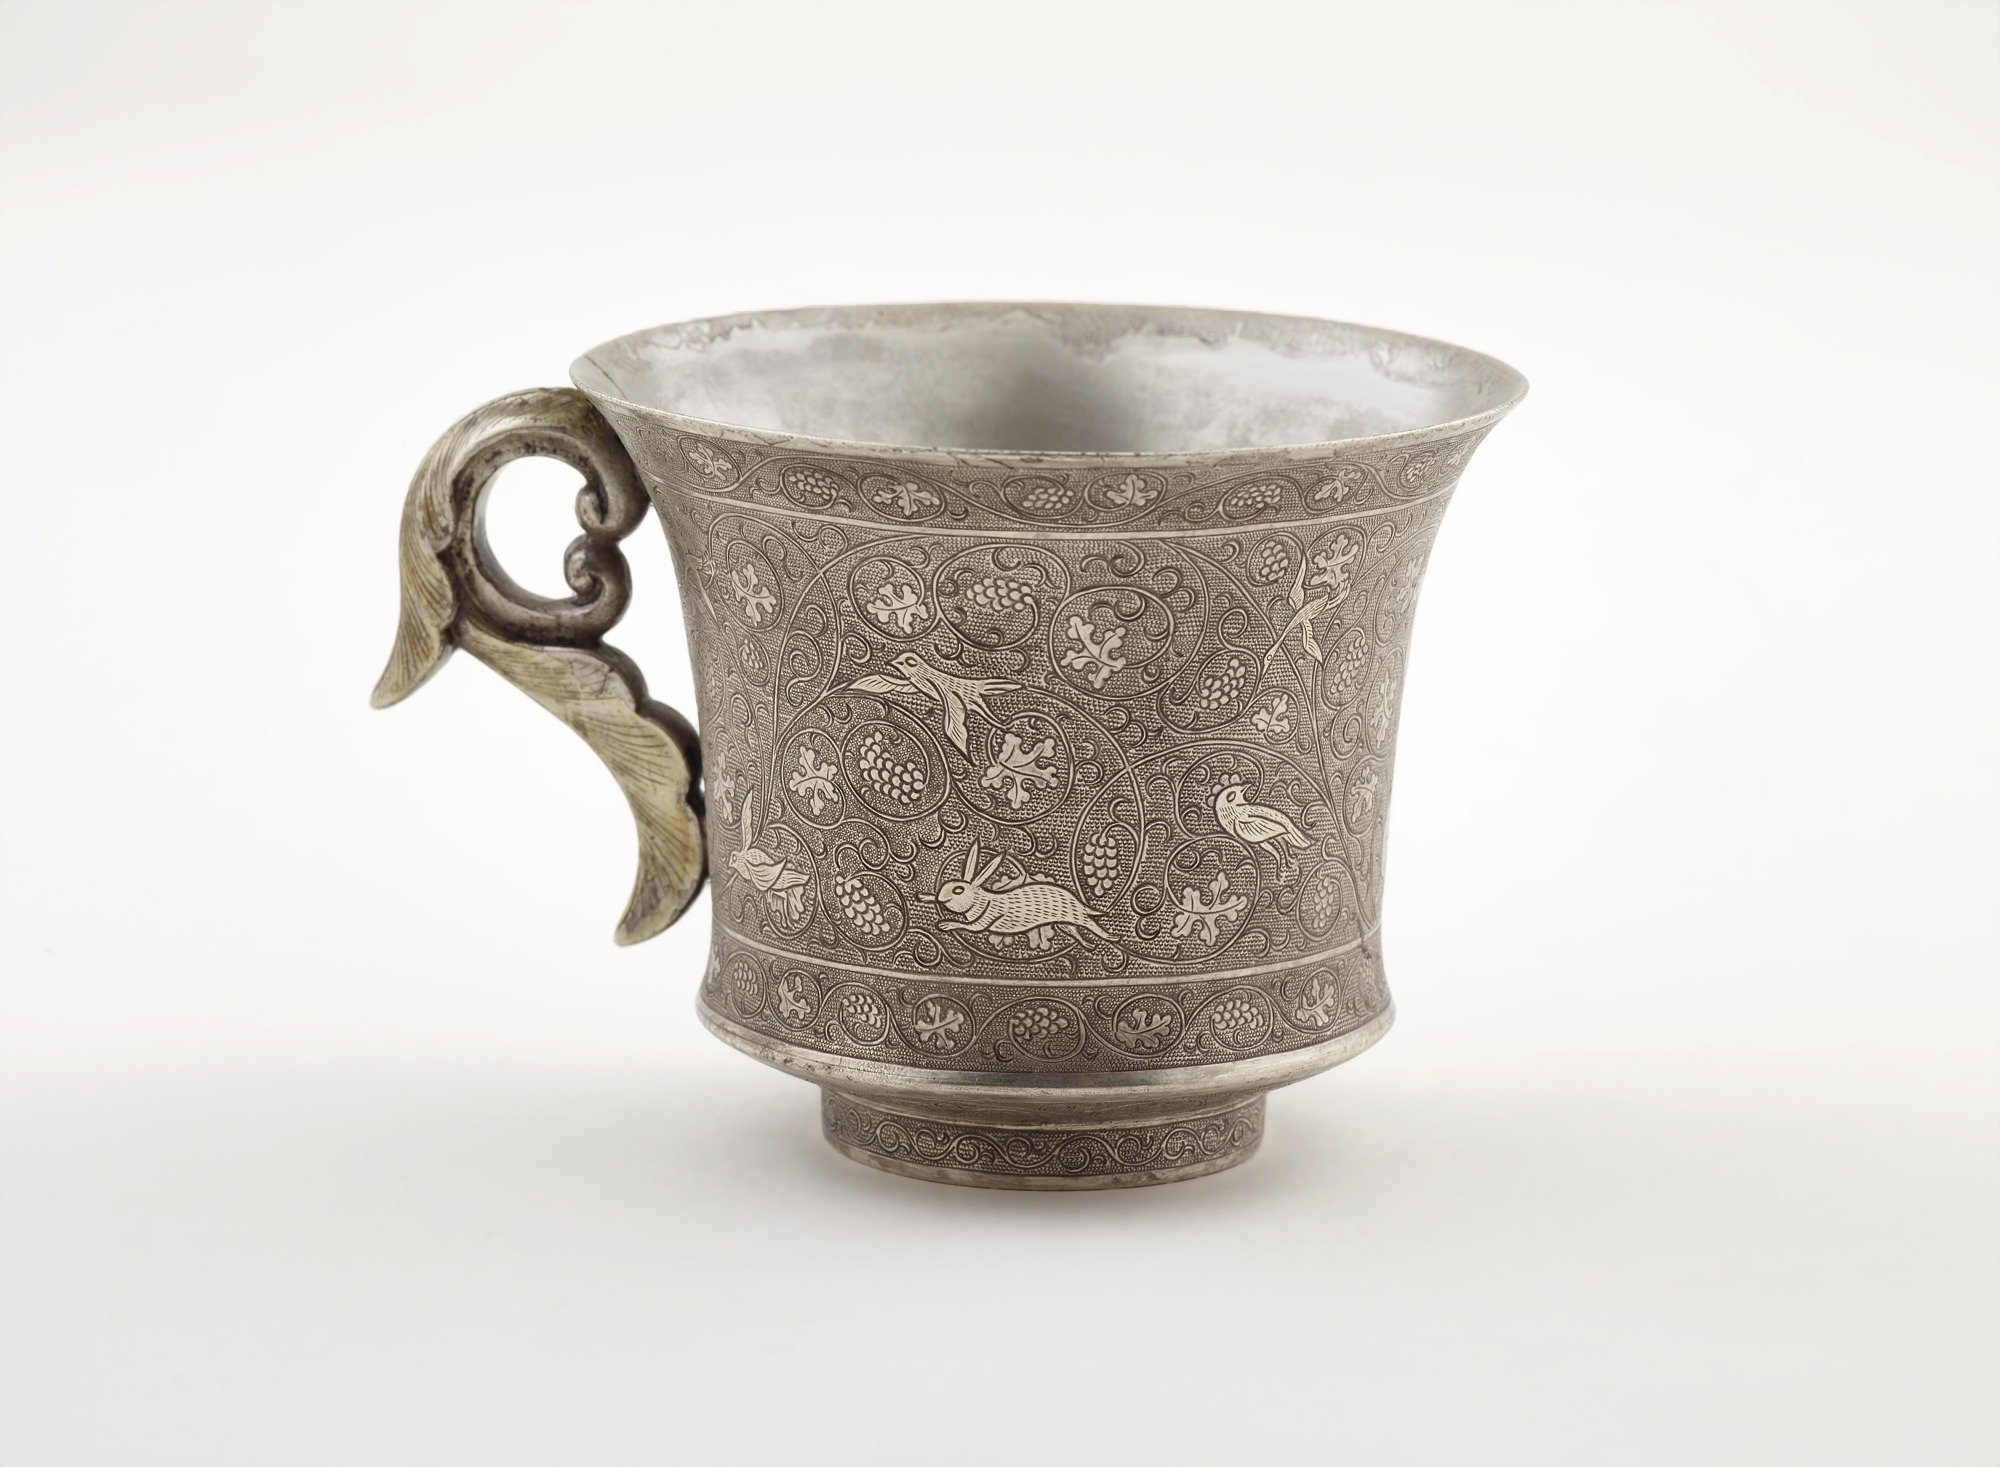 : Wine cup with ring handle, birds, animals, and grape vines